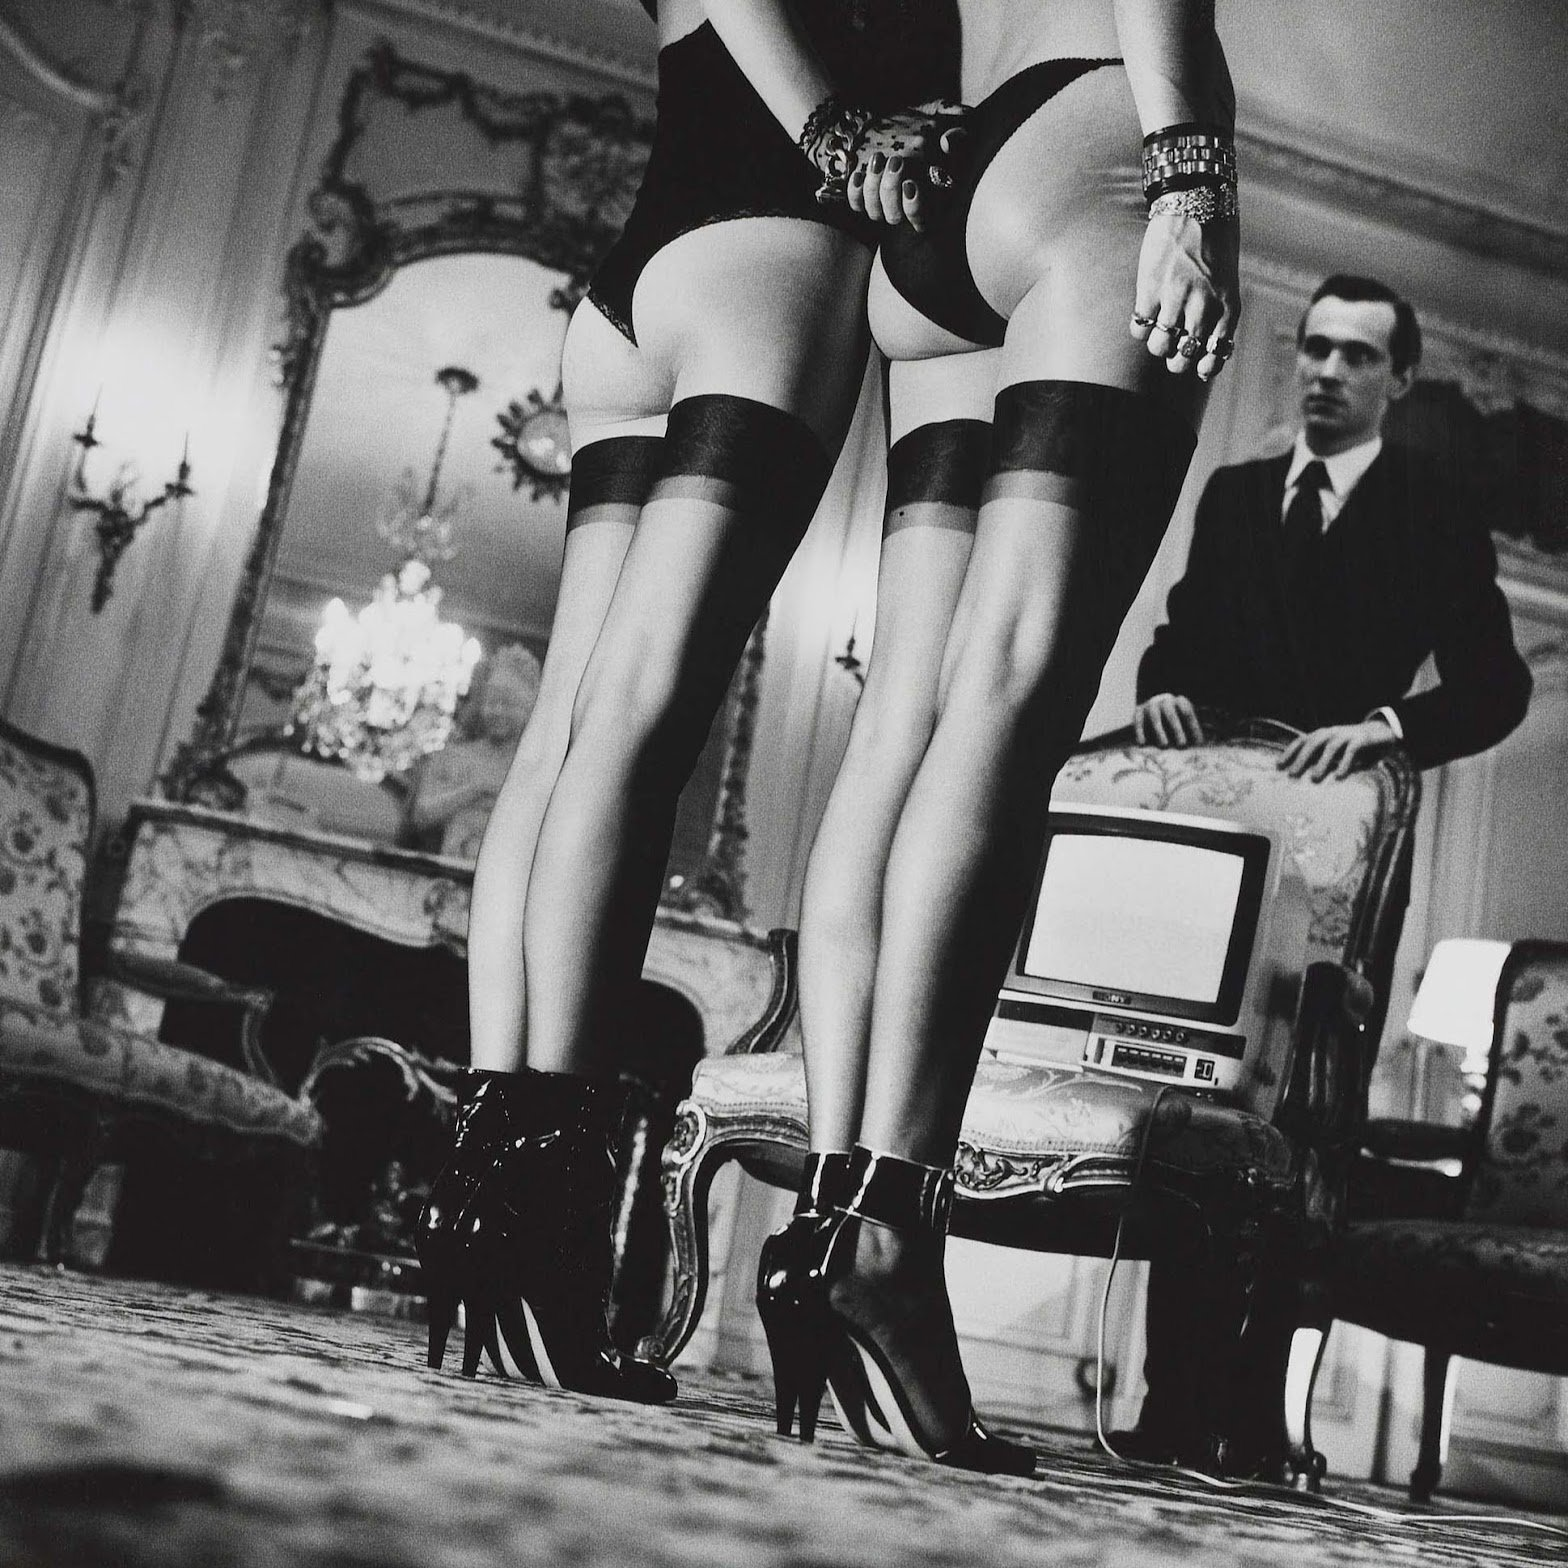 Shot on Hasselblad: Two pairs of legs in black stockings, Paris 1979 © Helmut Newton